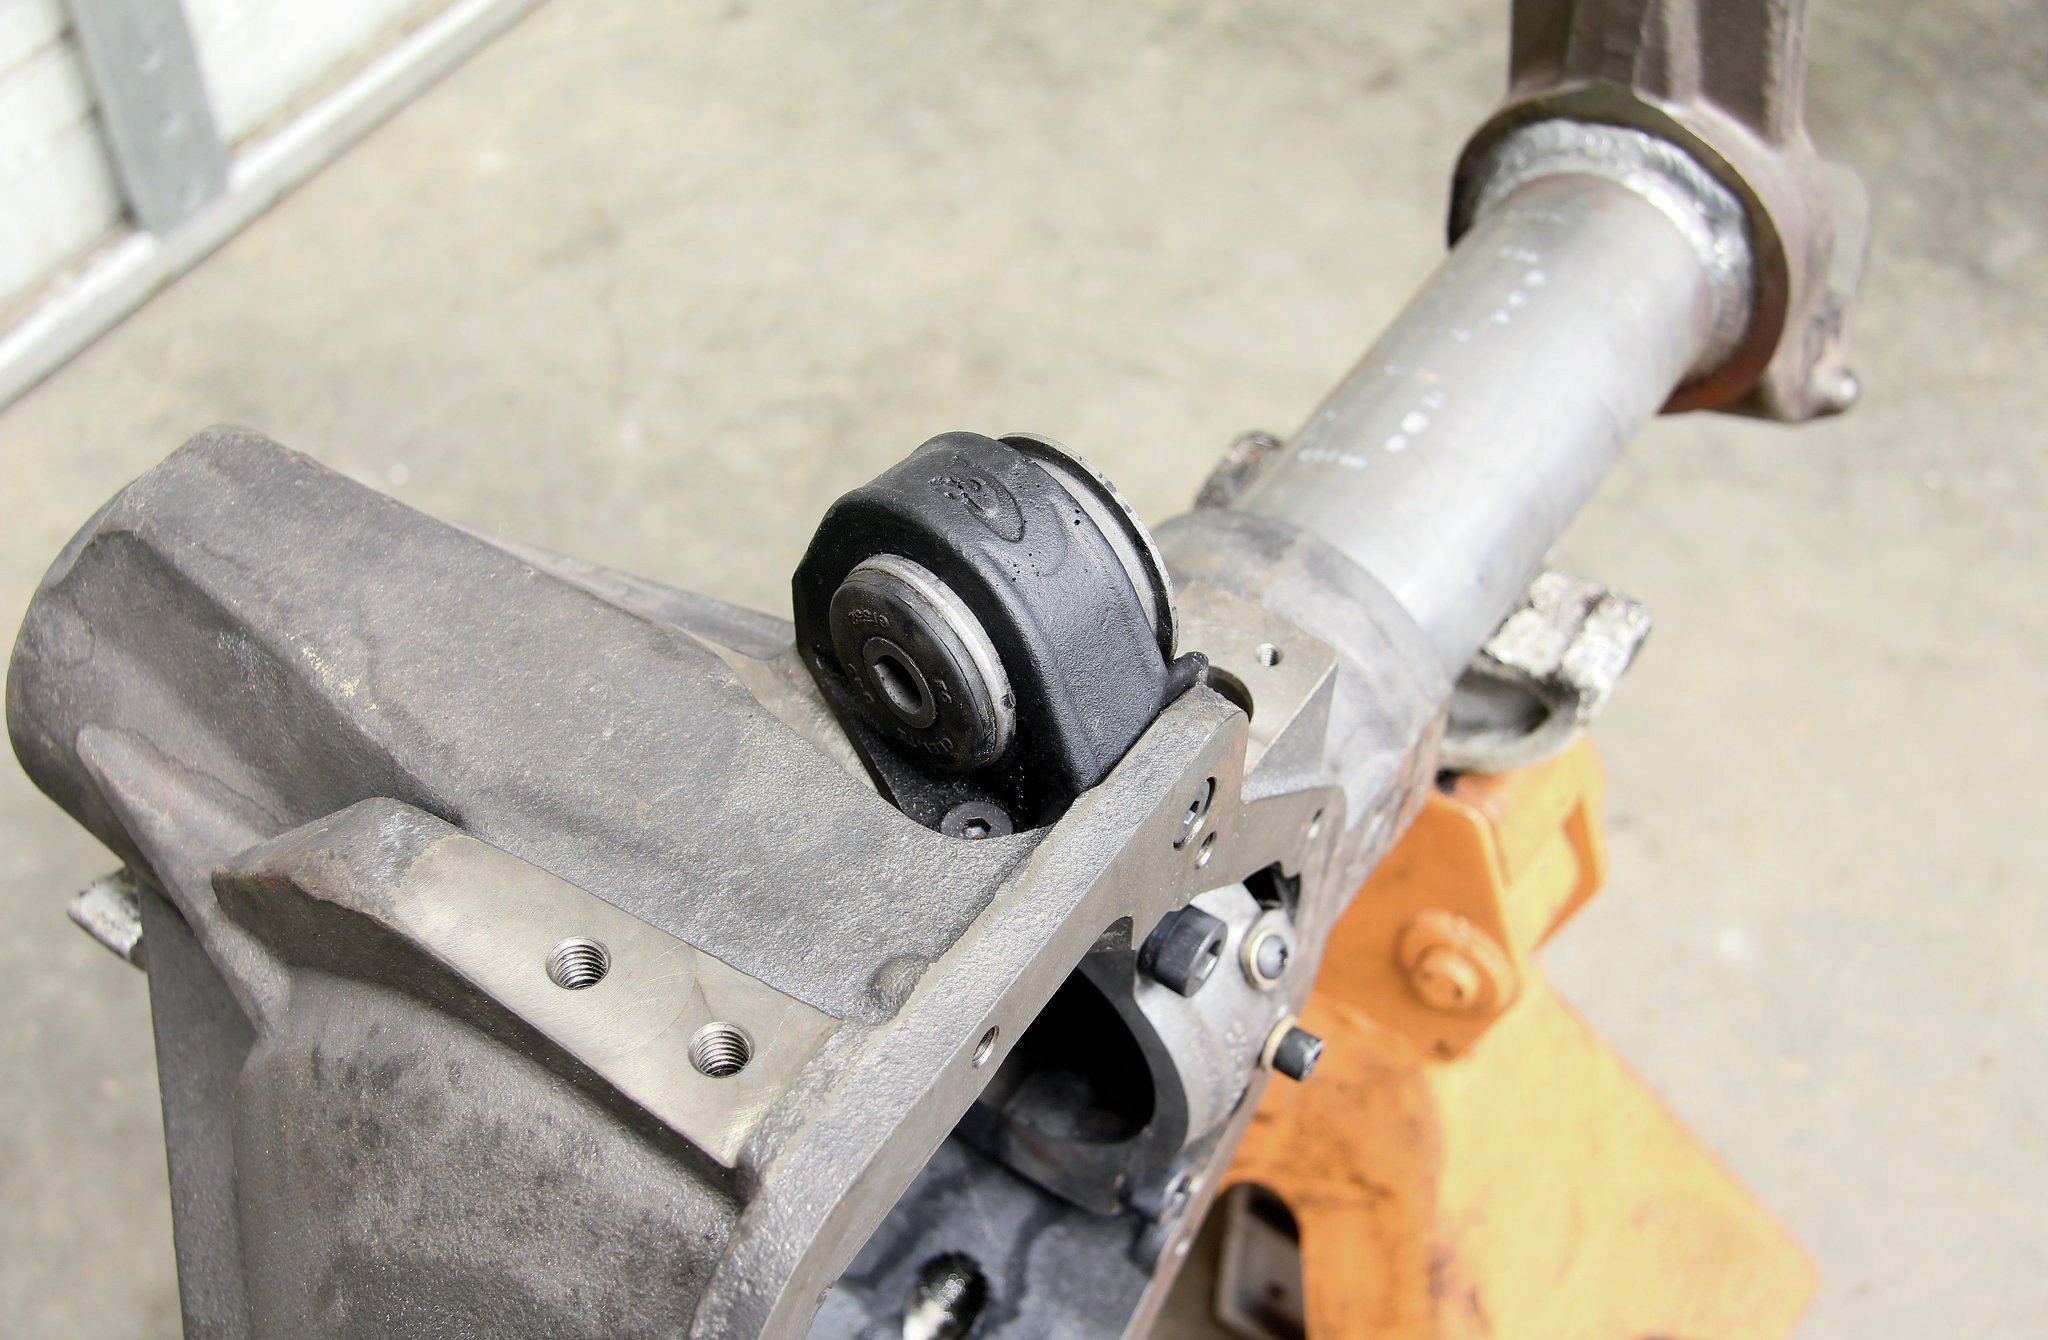 The one bracket that did come with the G2 housing was the upper control arm bushing. This setup actually bolts to the high-pinion American-made housing.